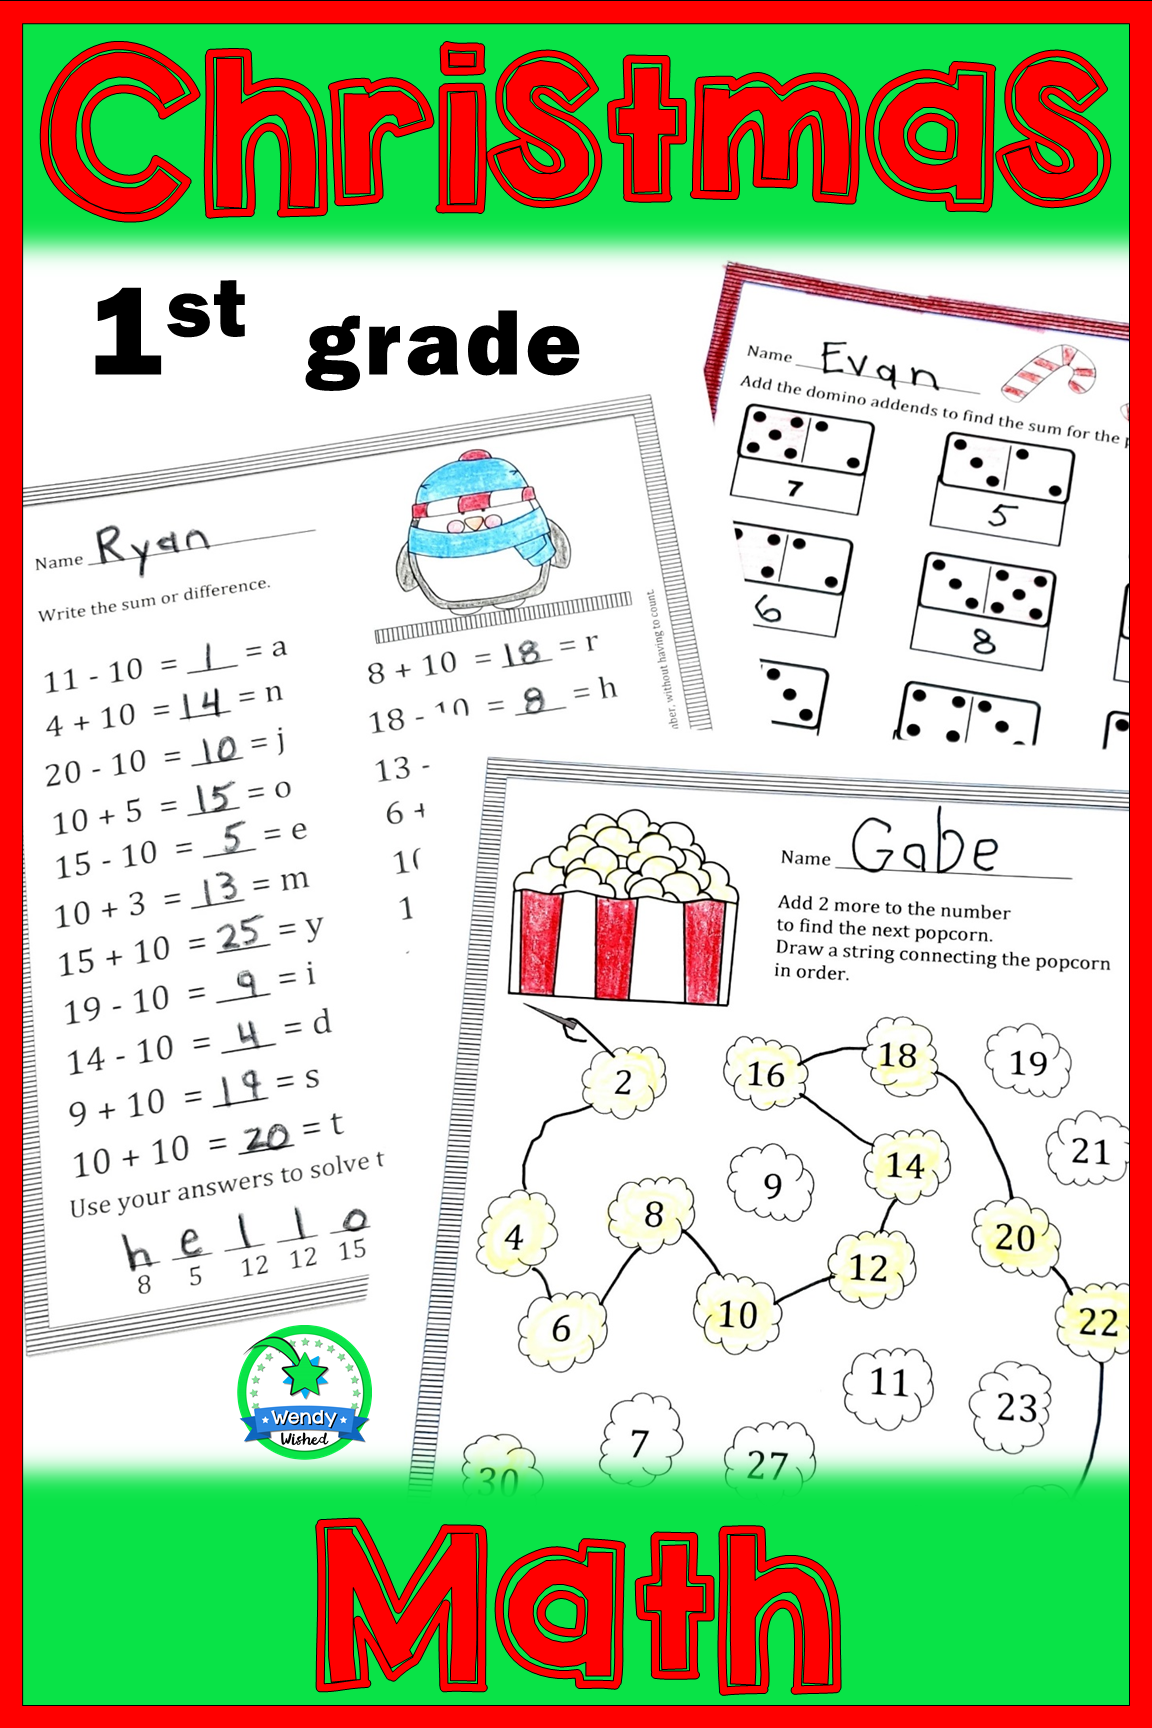 hight resolution of Christmas Math Worksheets for 1st grade   Christmas math worksheets